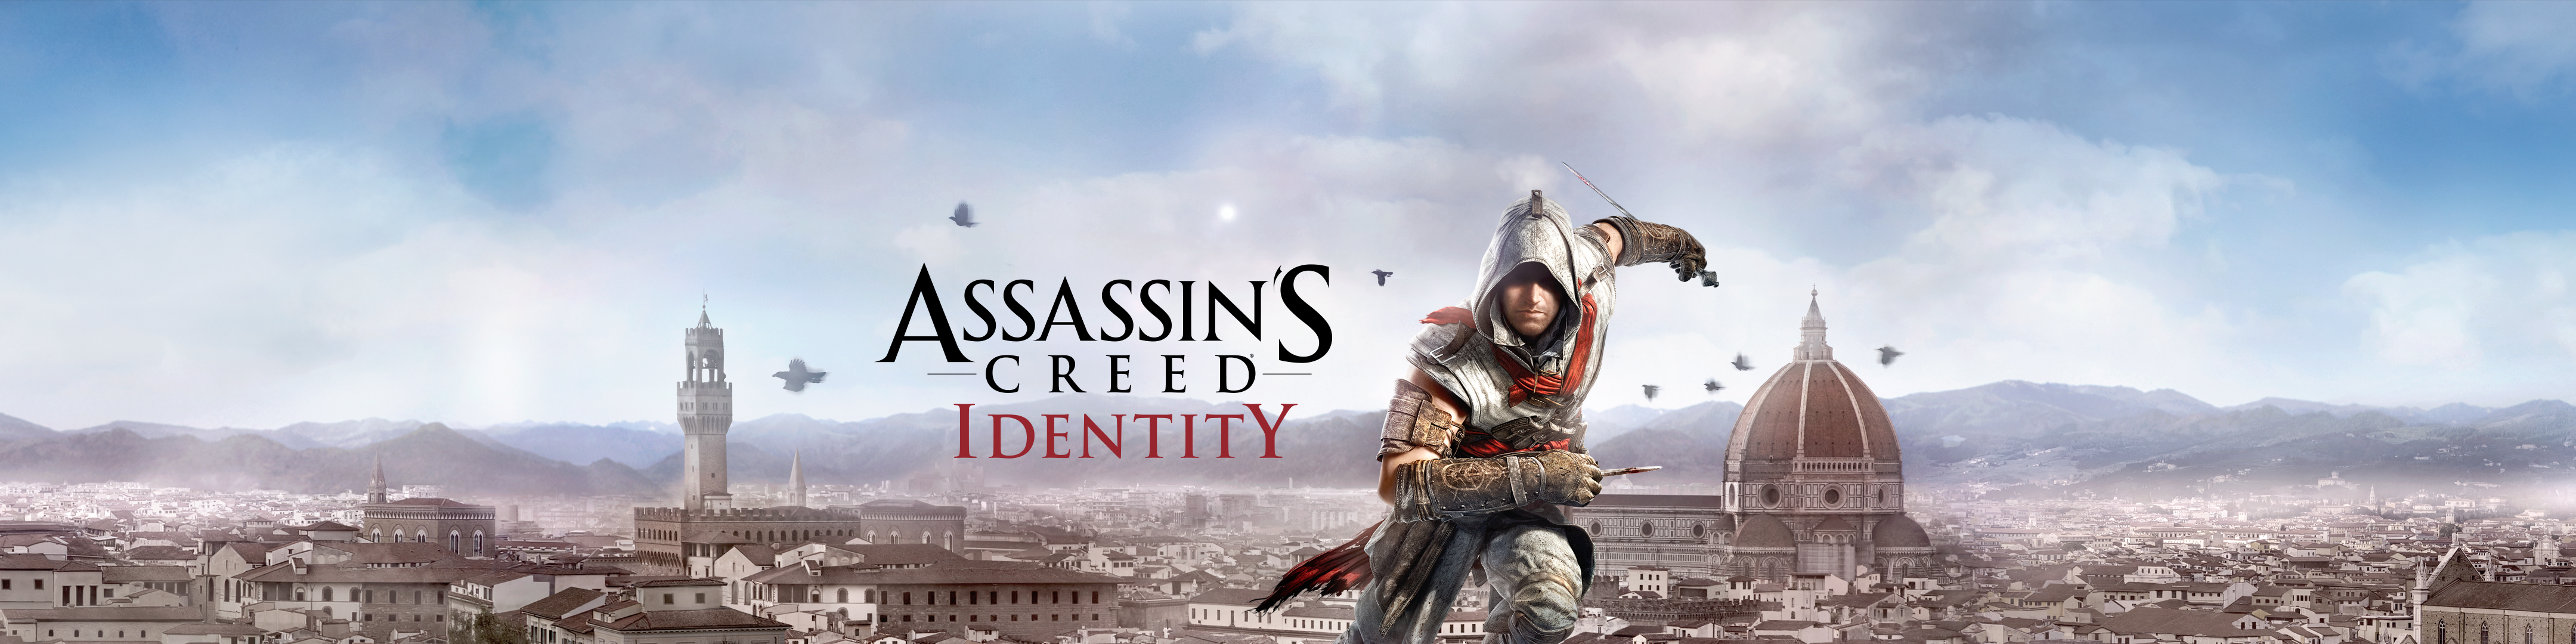 how to download assassins creed identity on pc